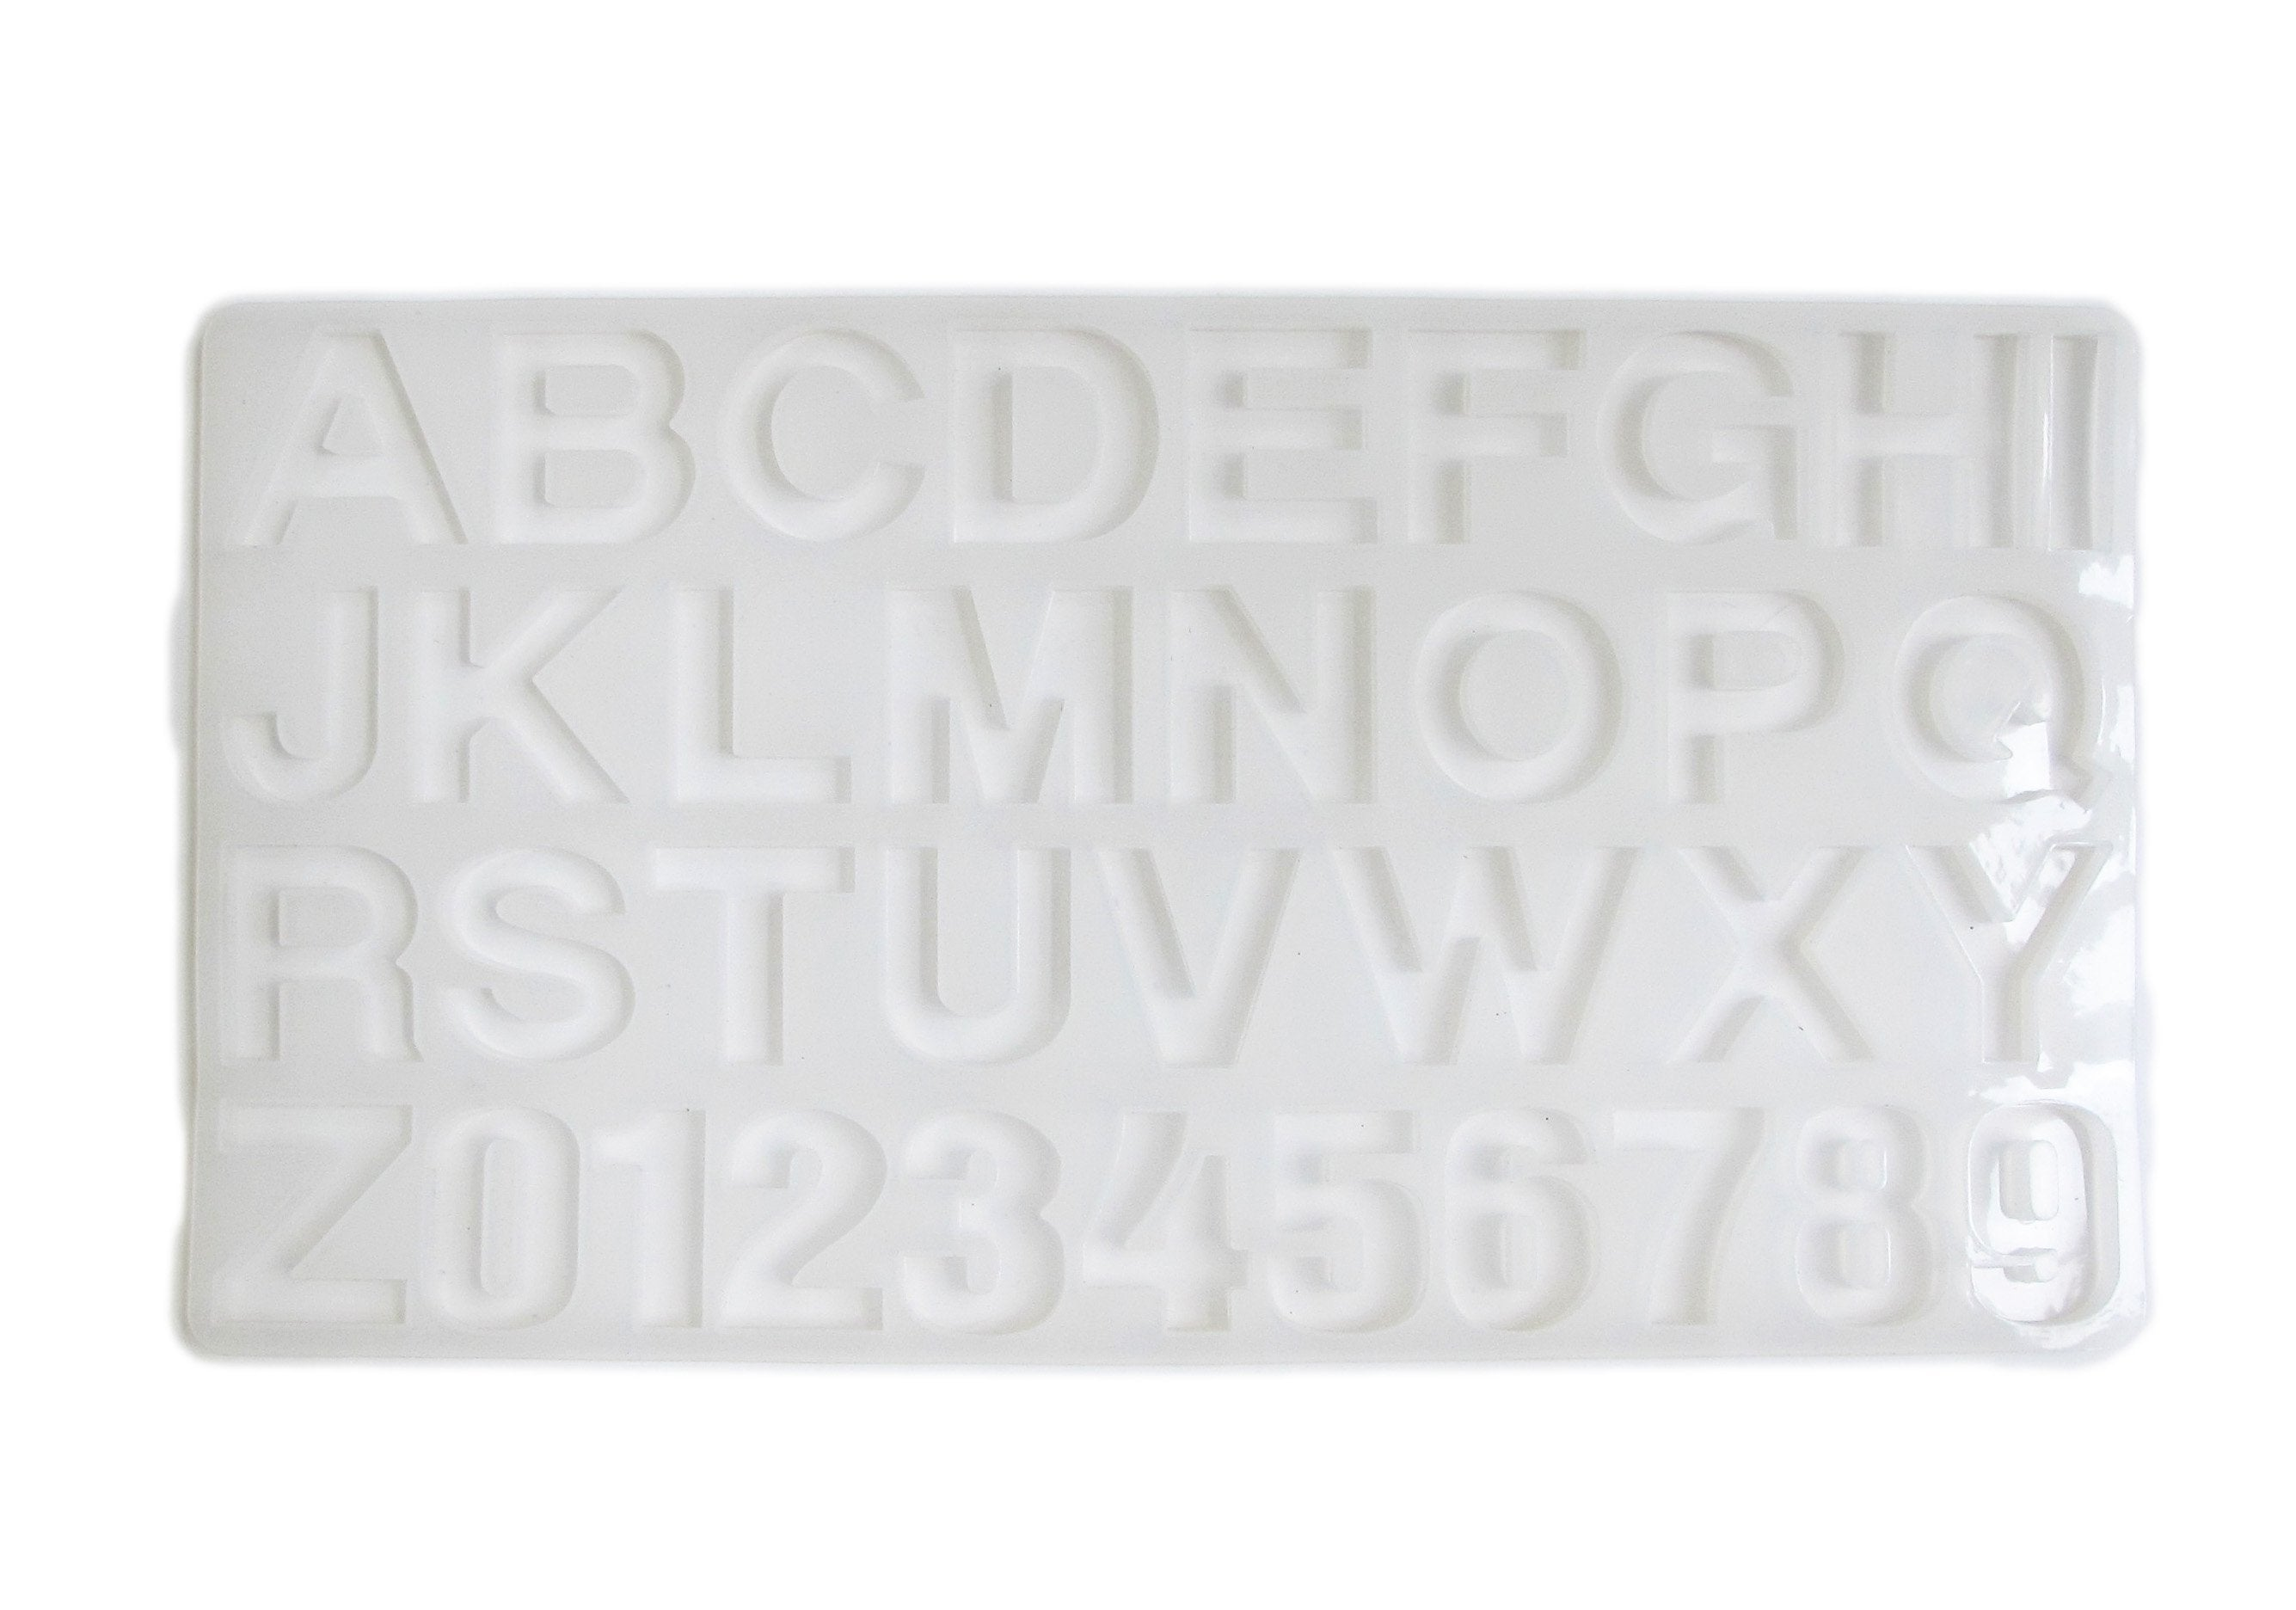 Silicone Alphabet Letters Numbers Mold - large resin letters